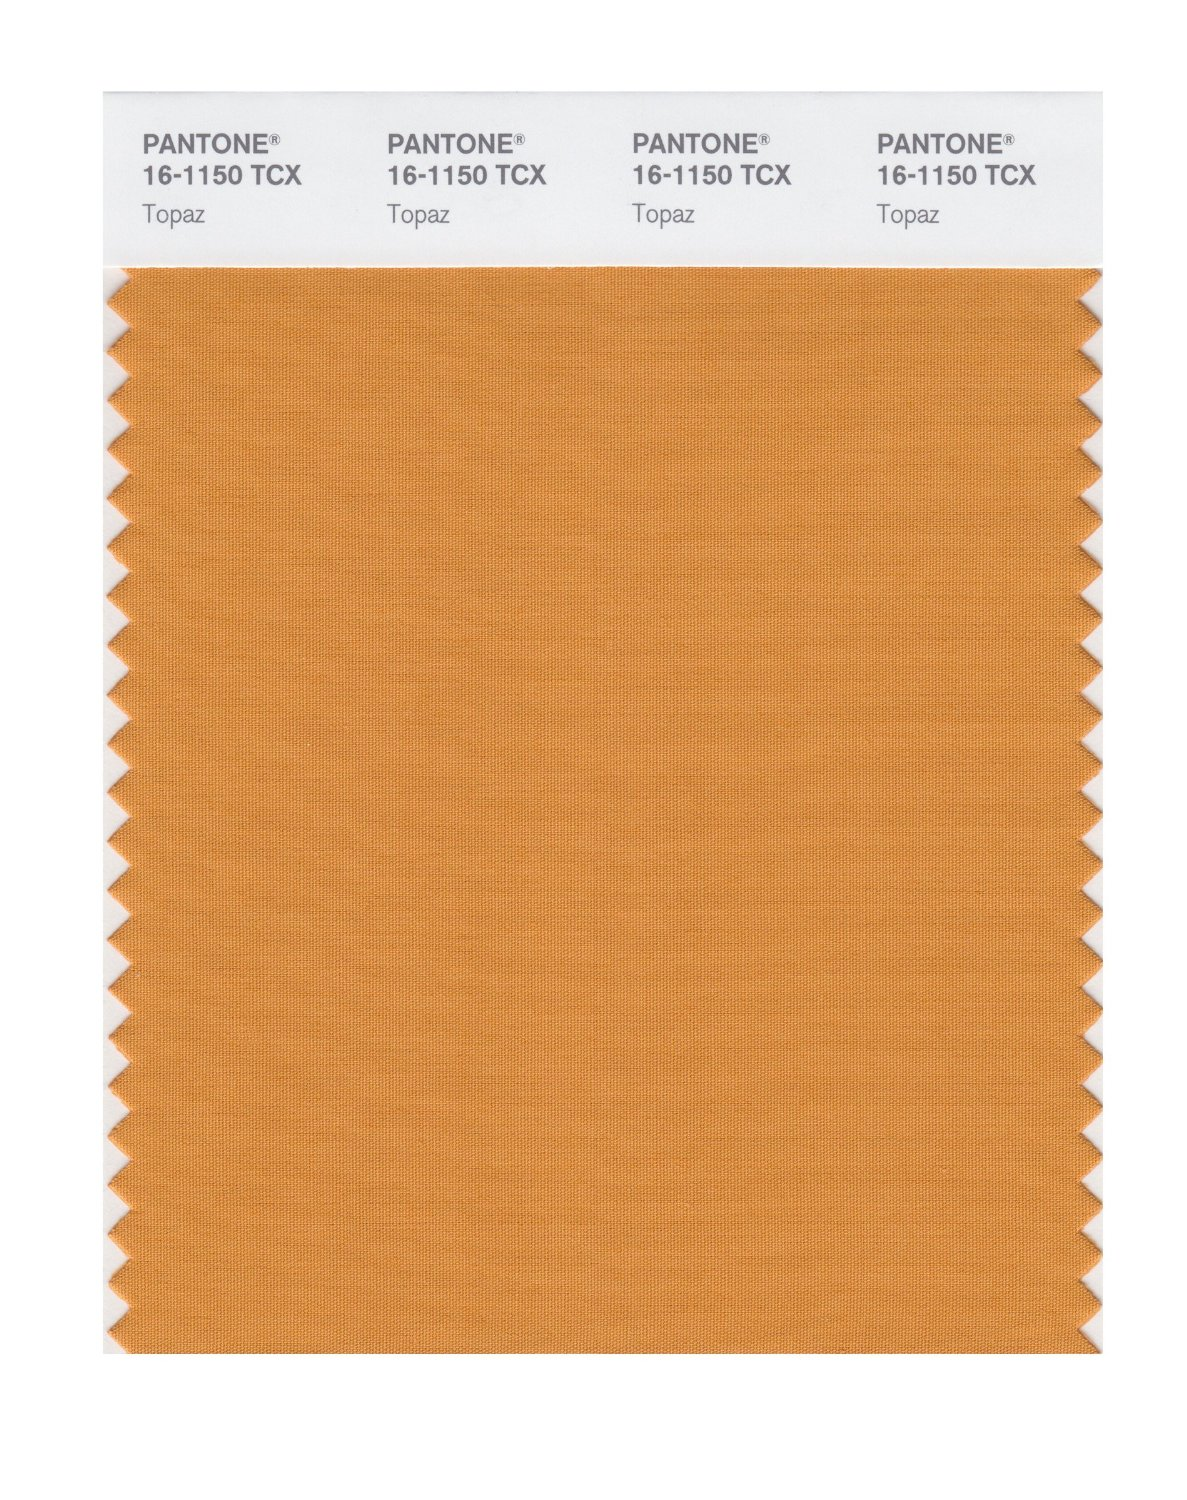 Pantone Smart Swatch 16-1150 Topaz